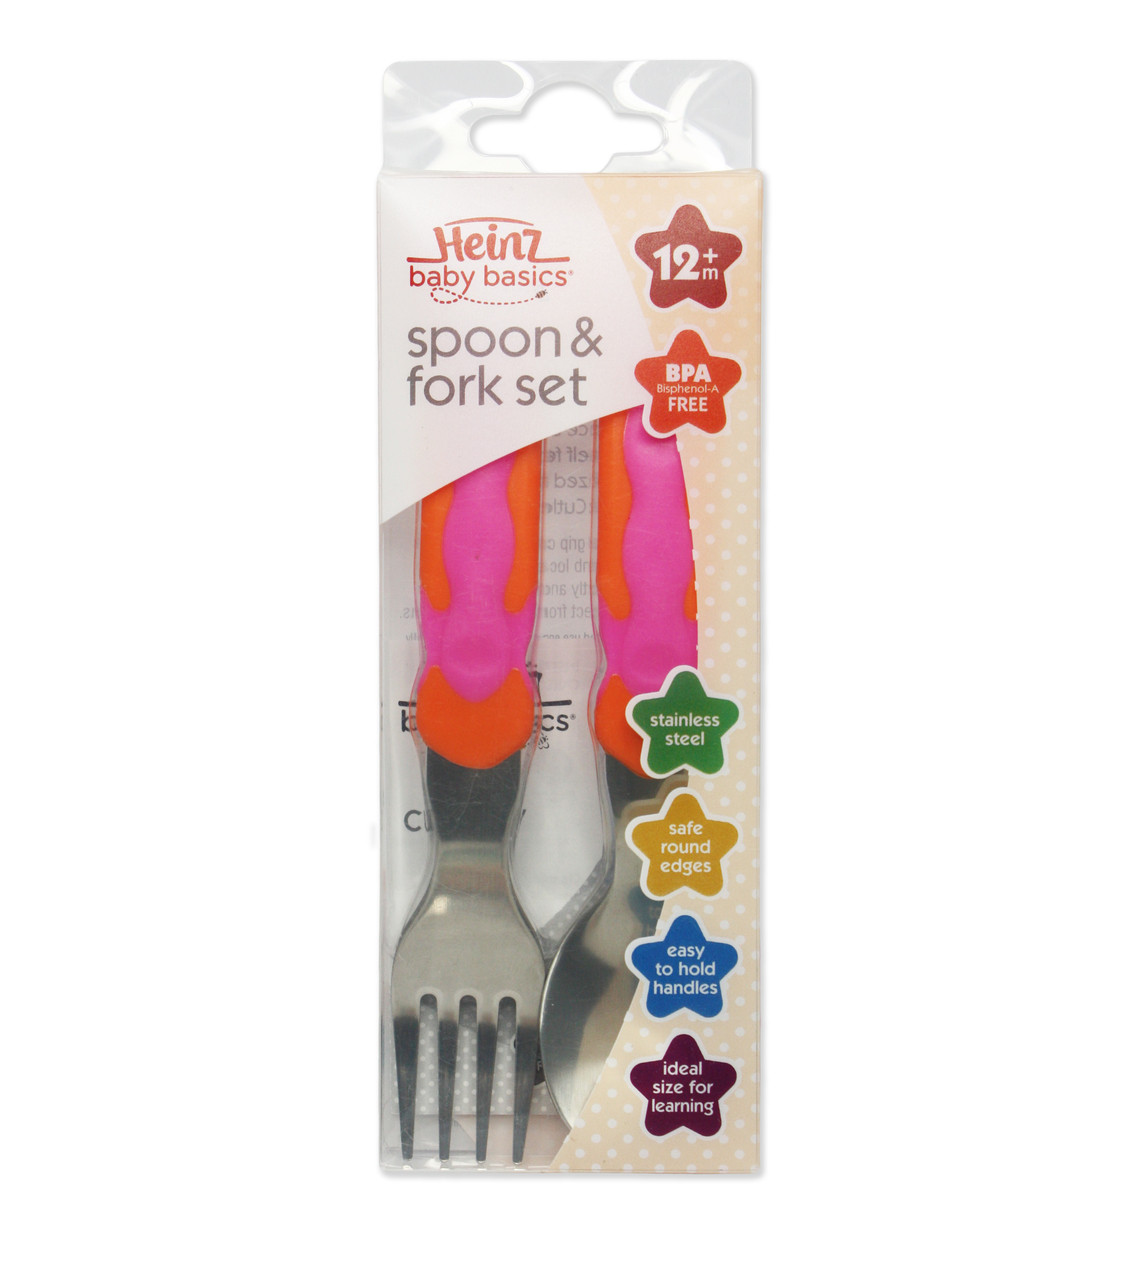 Heinz Baby Basics Spoon & Fork Set at Baby Barn Discounts Heinz specially sized high grade stainless steel cutlery has been designed to encourage independent feeding.